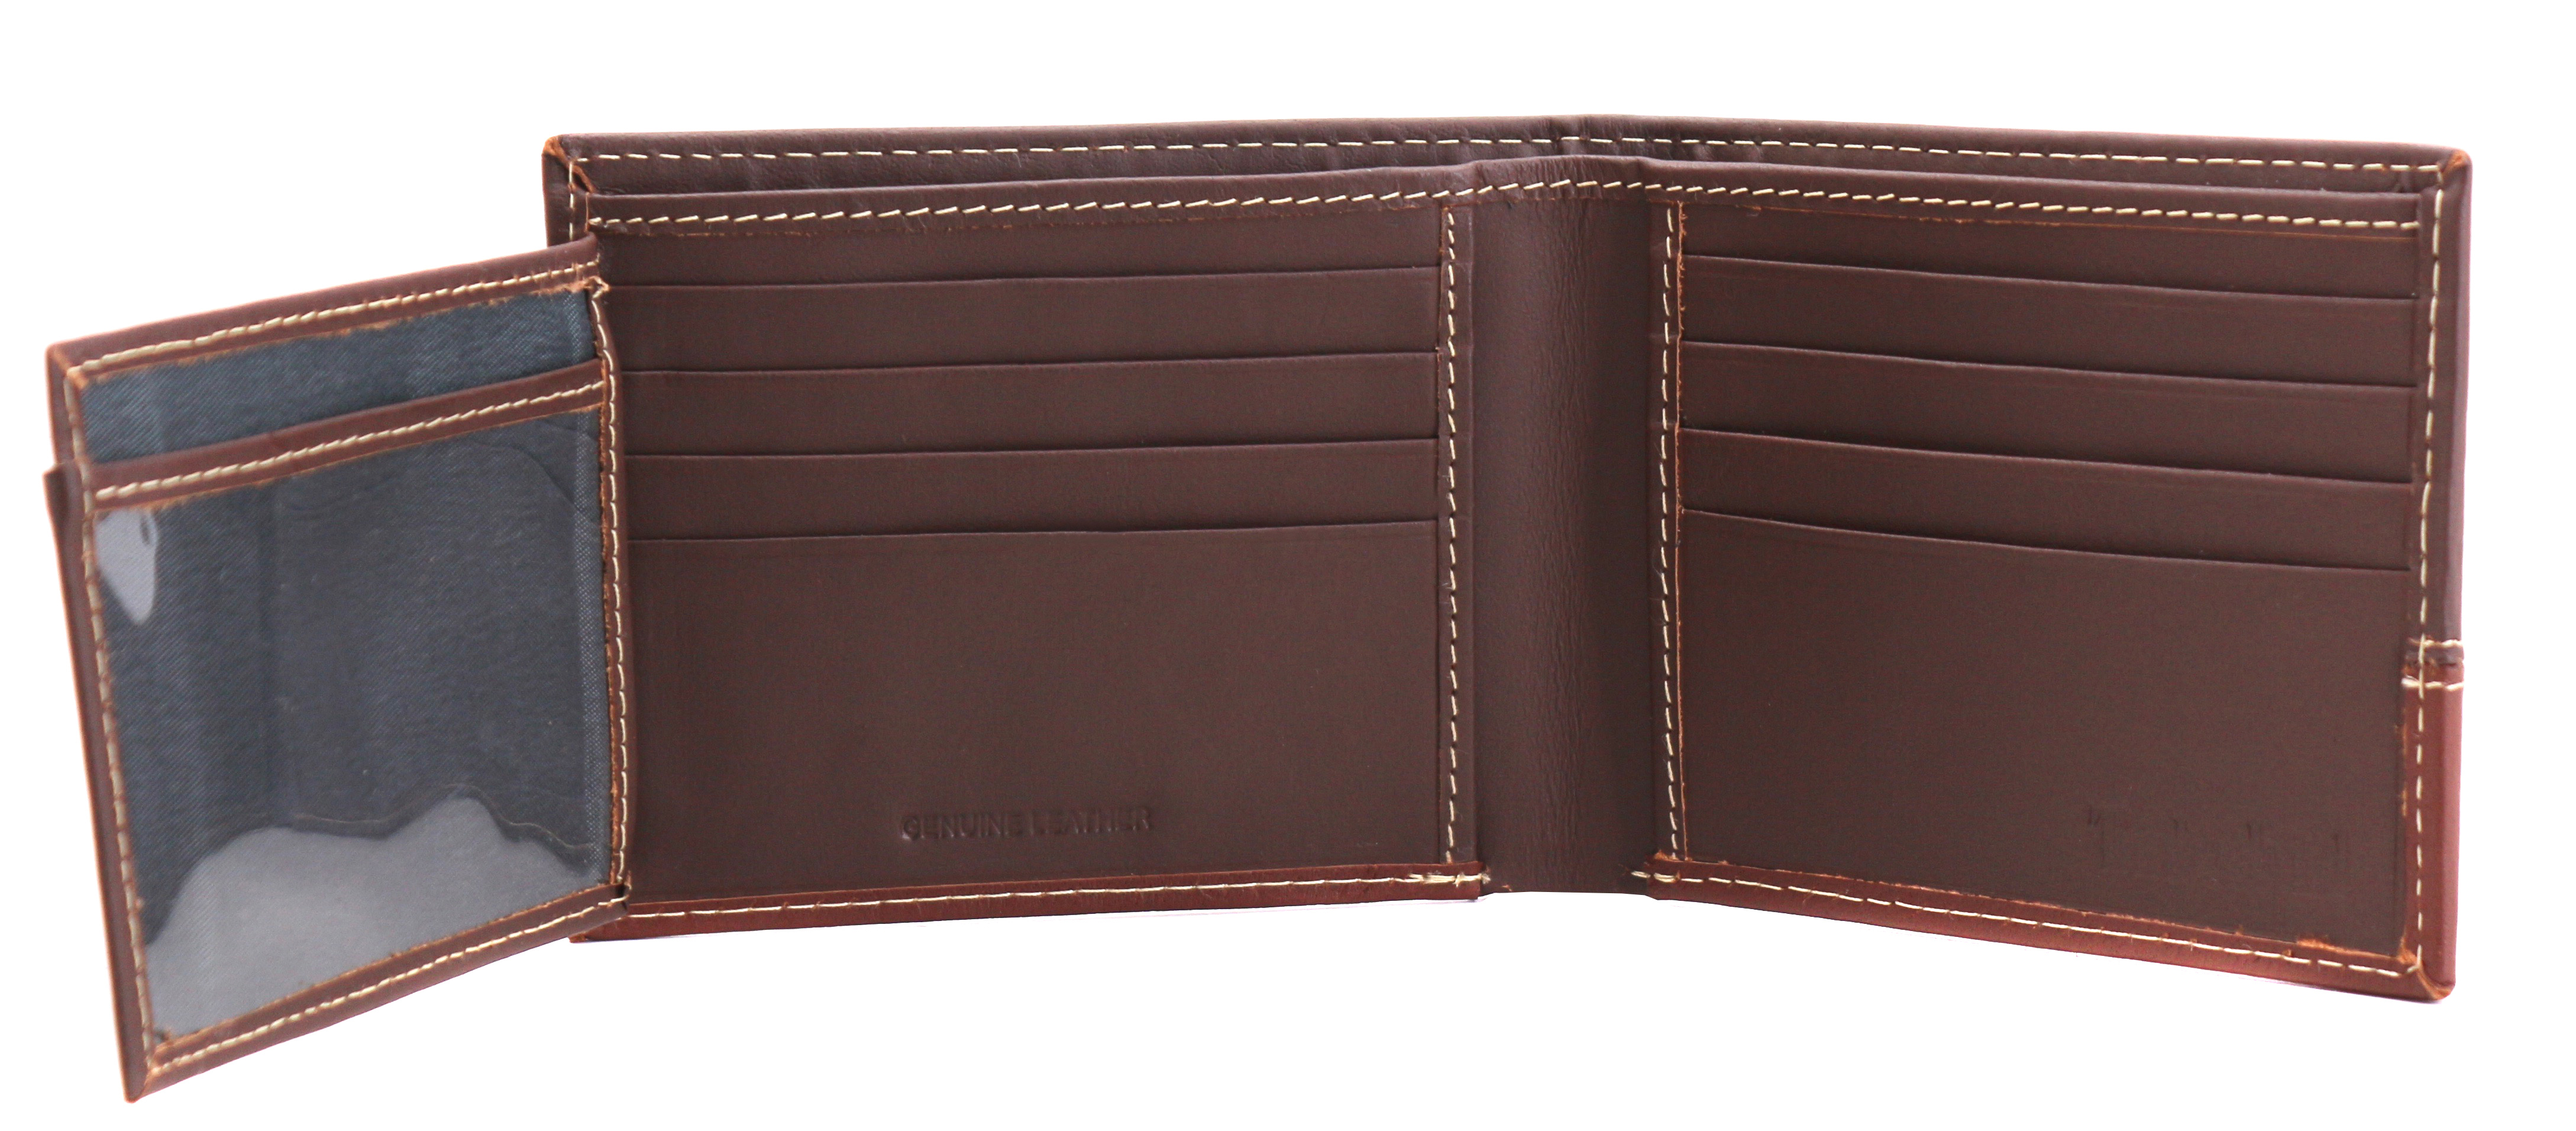 Timberland-Men-039-s-Genuine-Two-Tone-Leather-Credit-Card-Billfold-Commuter-Wallet thumbnail 23